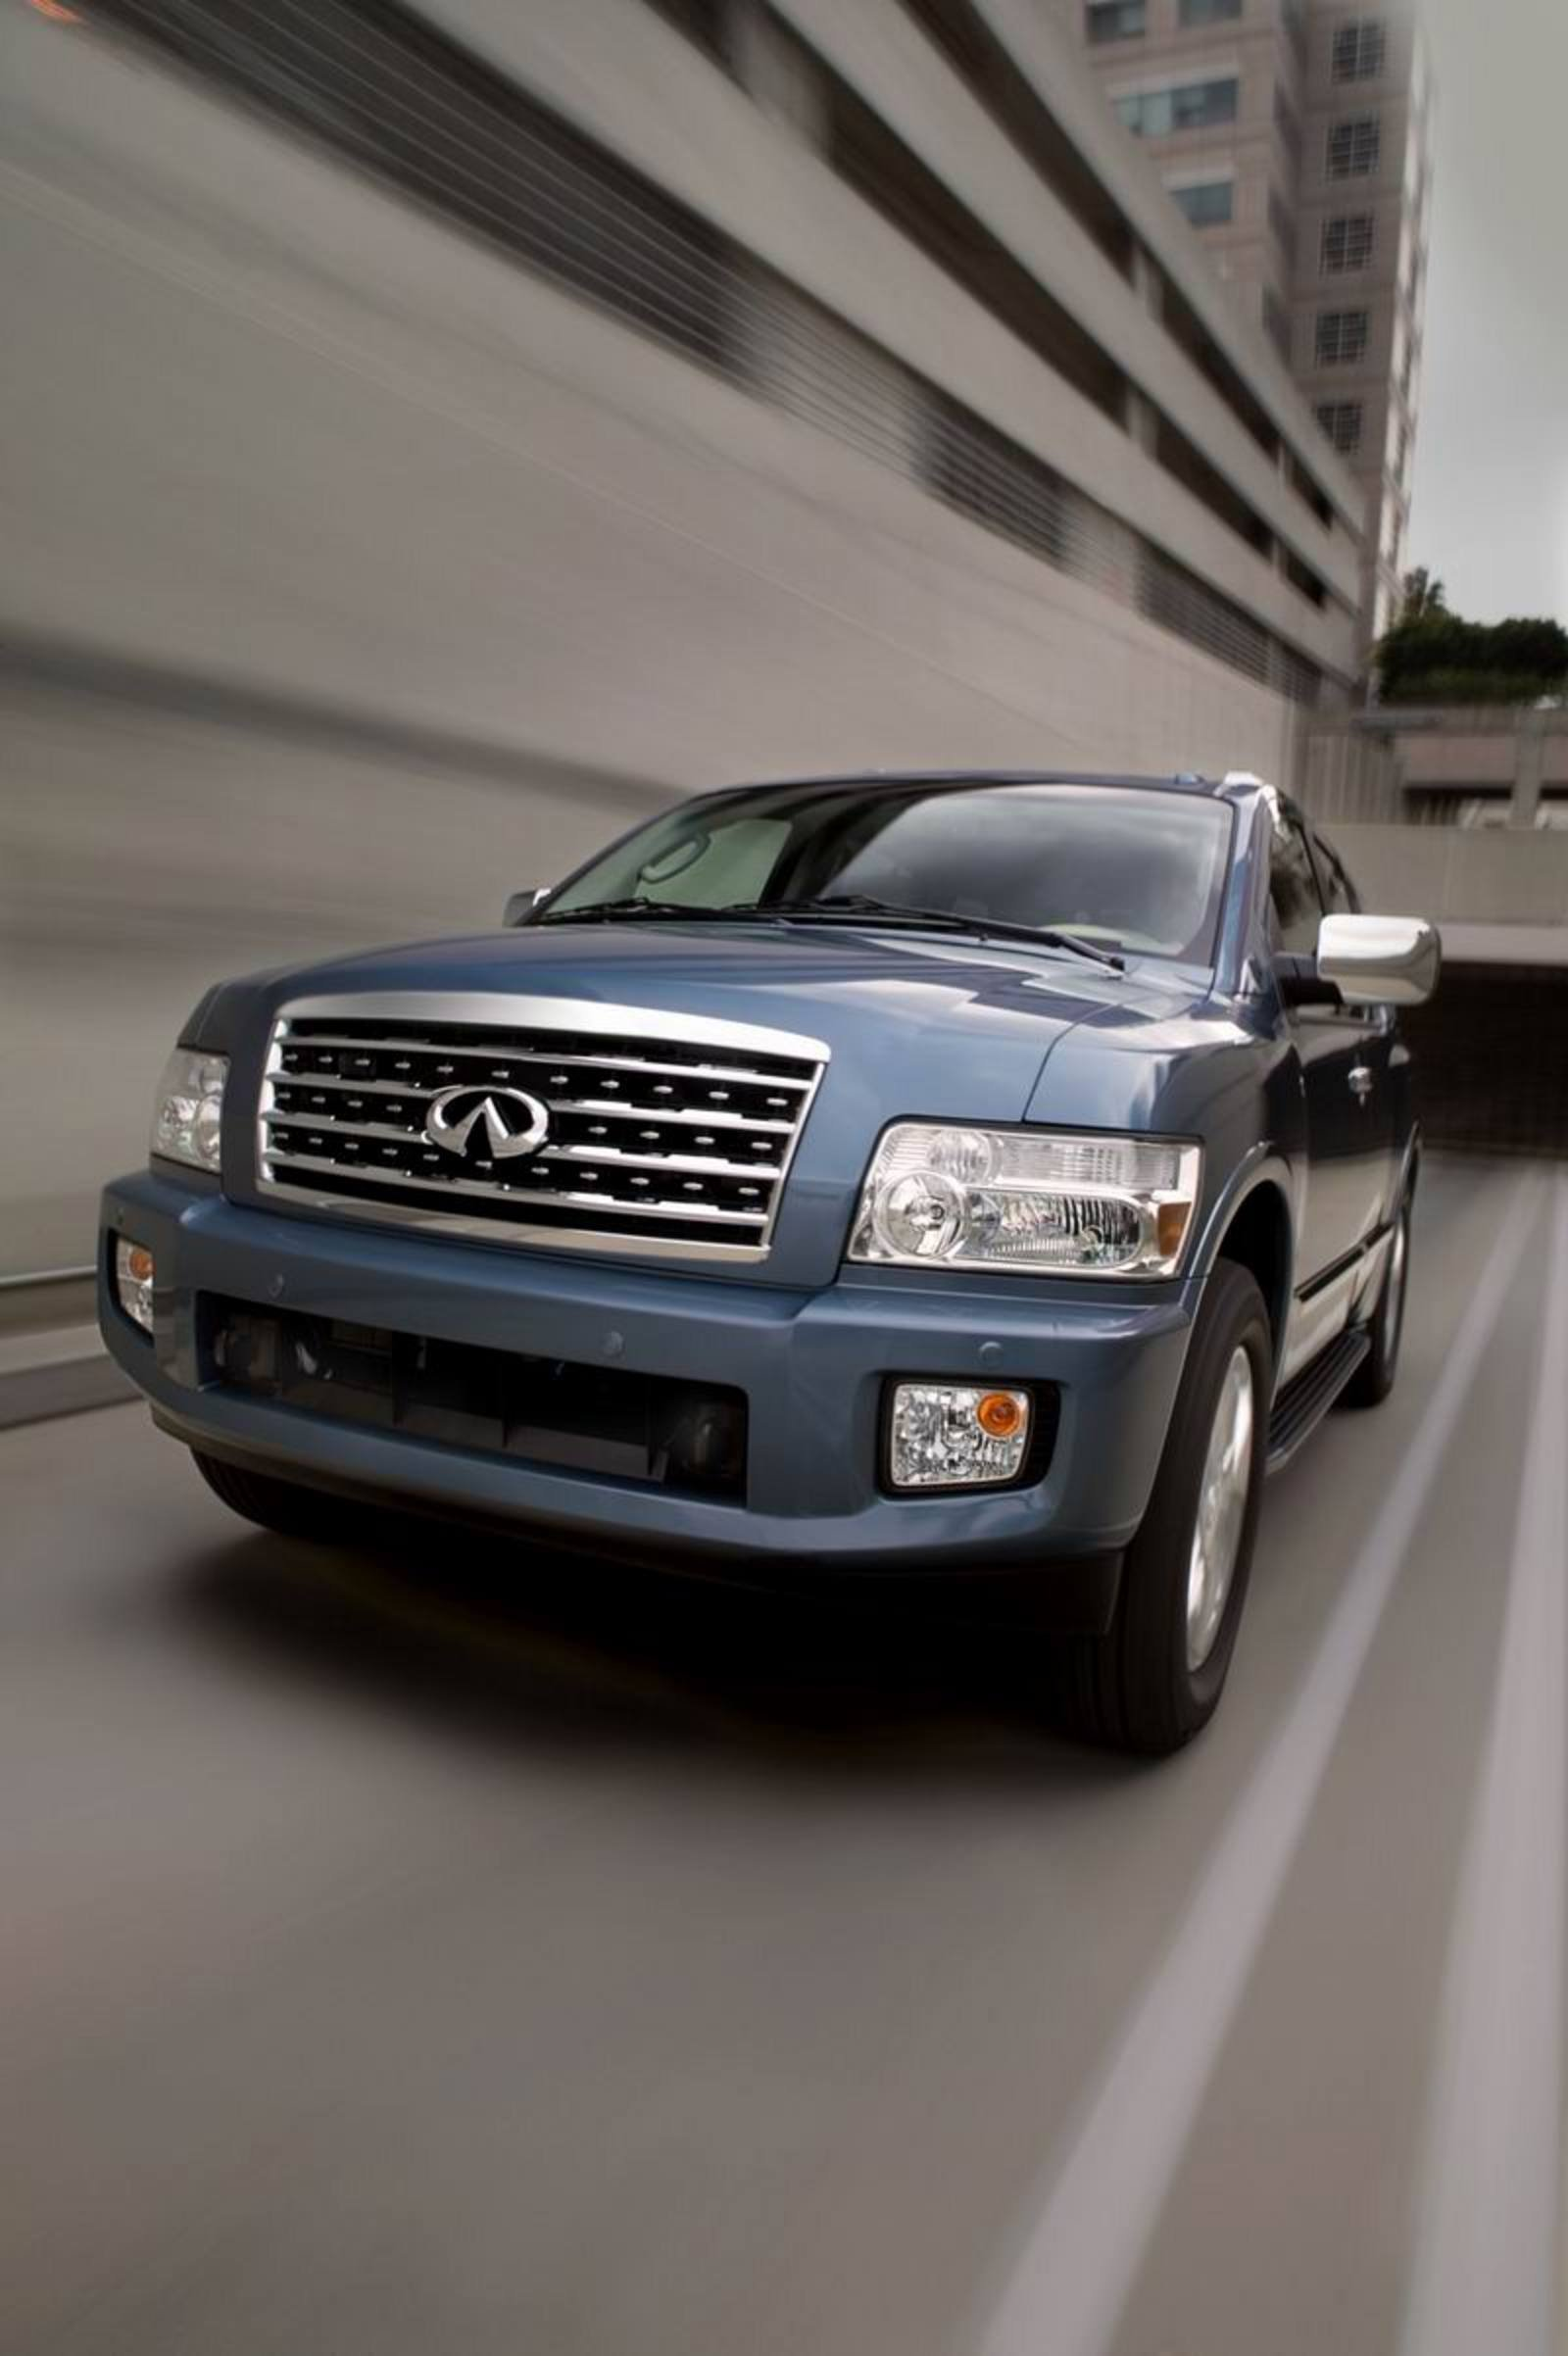 Jd Auto Sales >> 2008 Infiniti QX56 Review - Top Speed